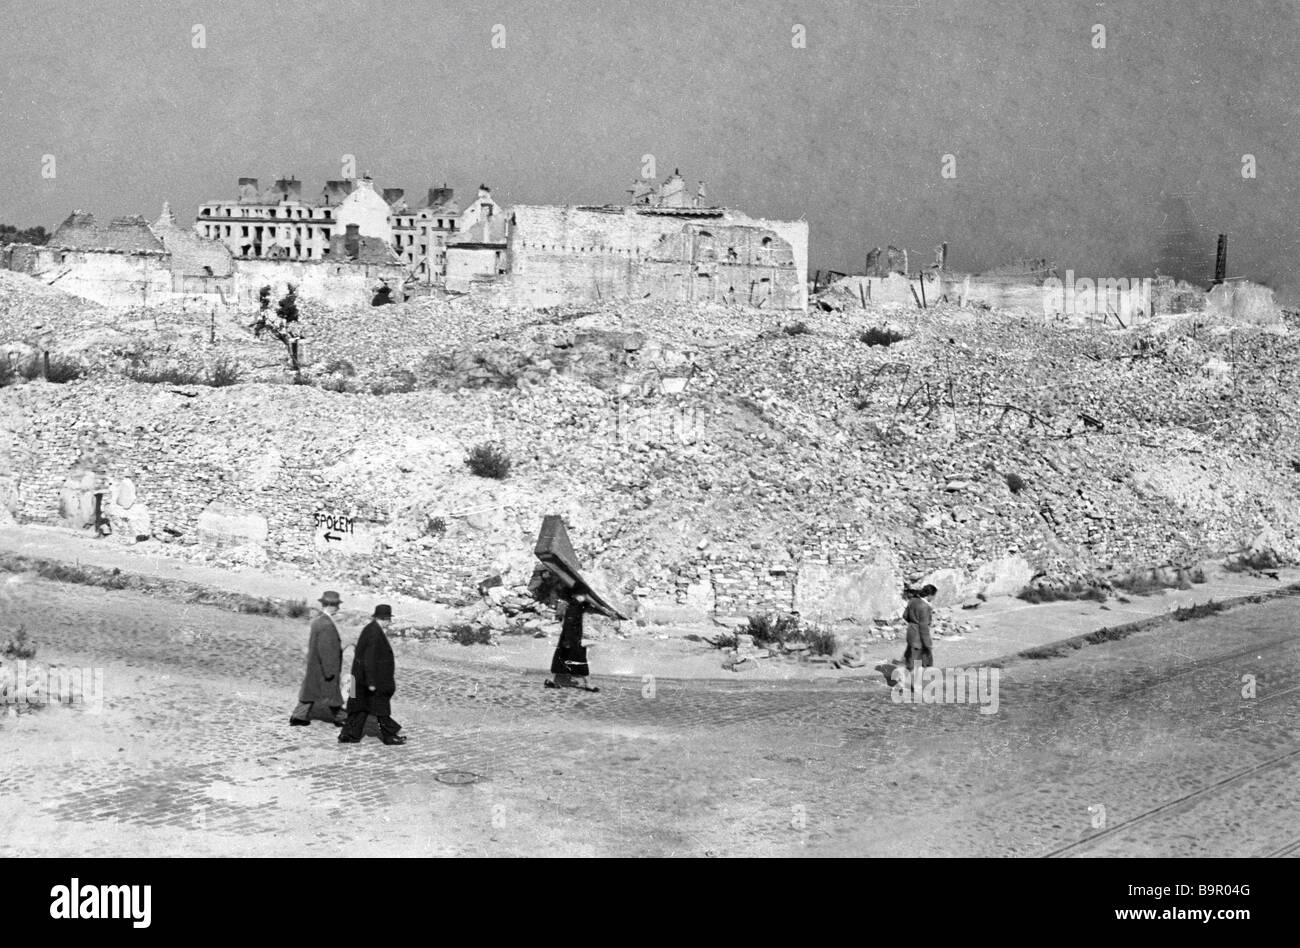 A town in Western Europe completely destroyed by Nazi aircraft - Stock Image